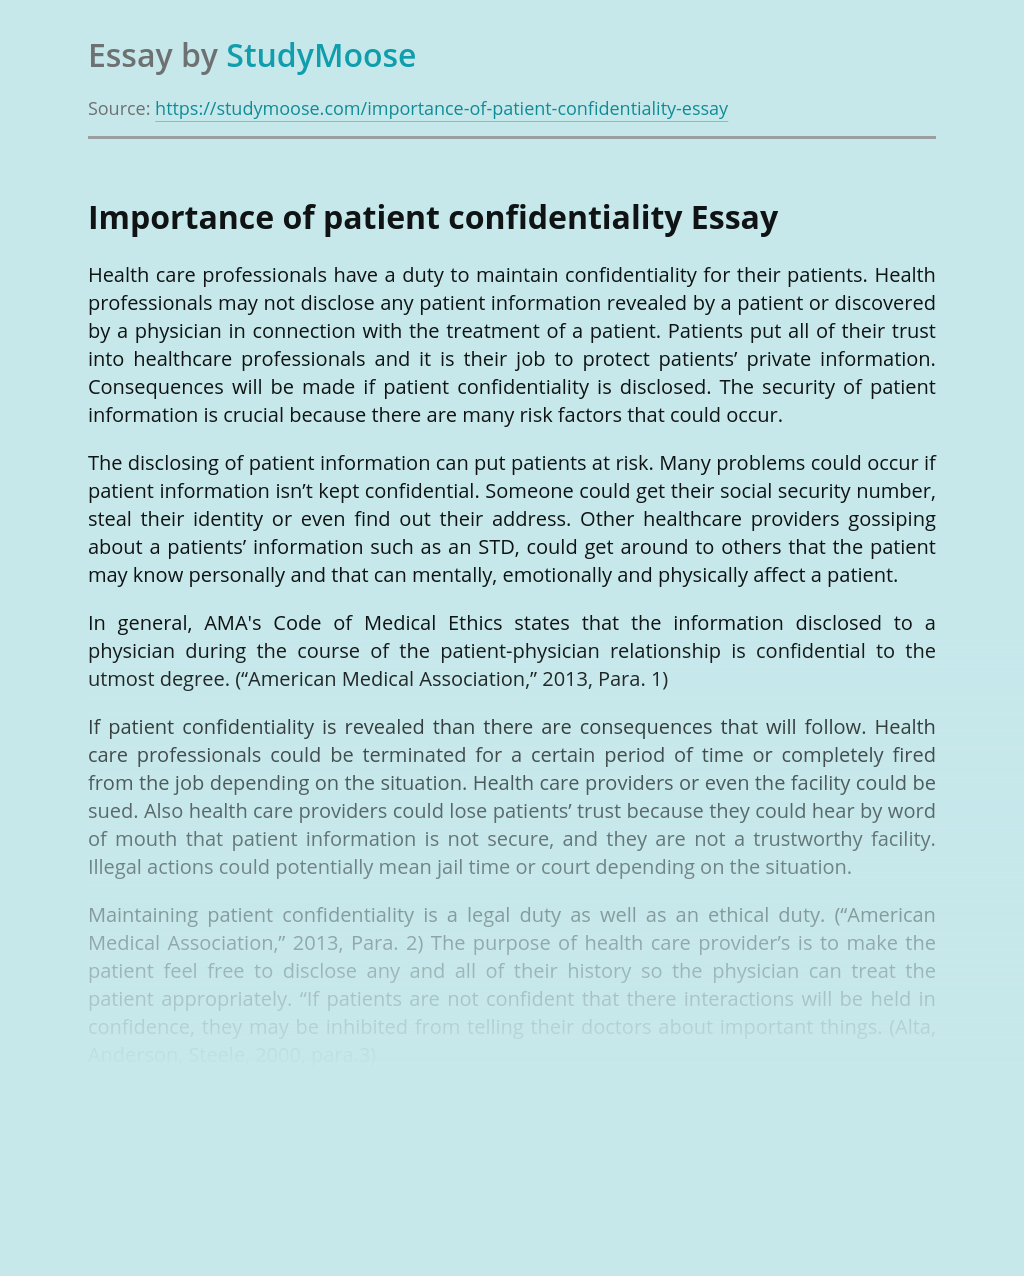 Importance of Patient Confidentiality